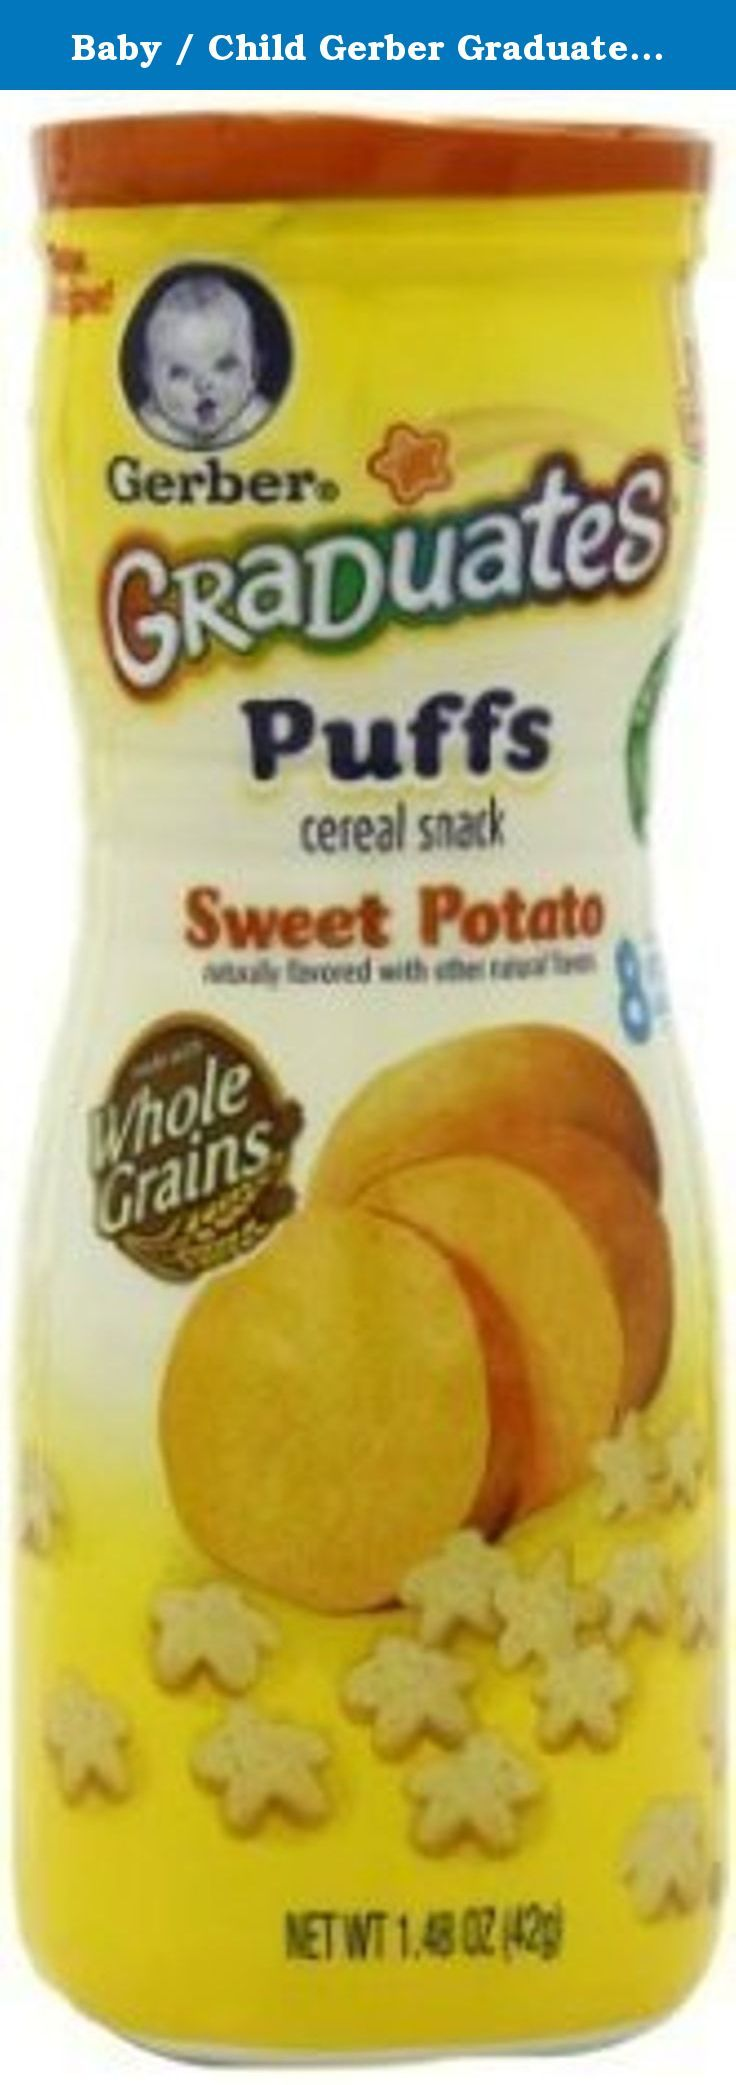 Baby child gerber graduates puffs melts in your mouth w